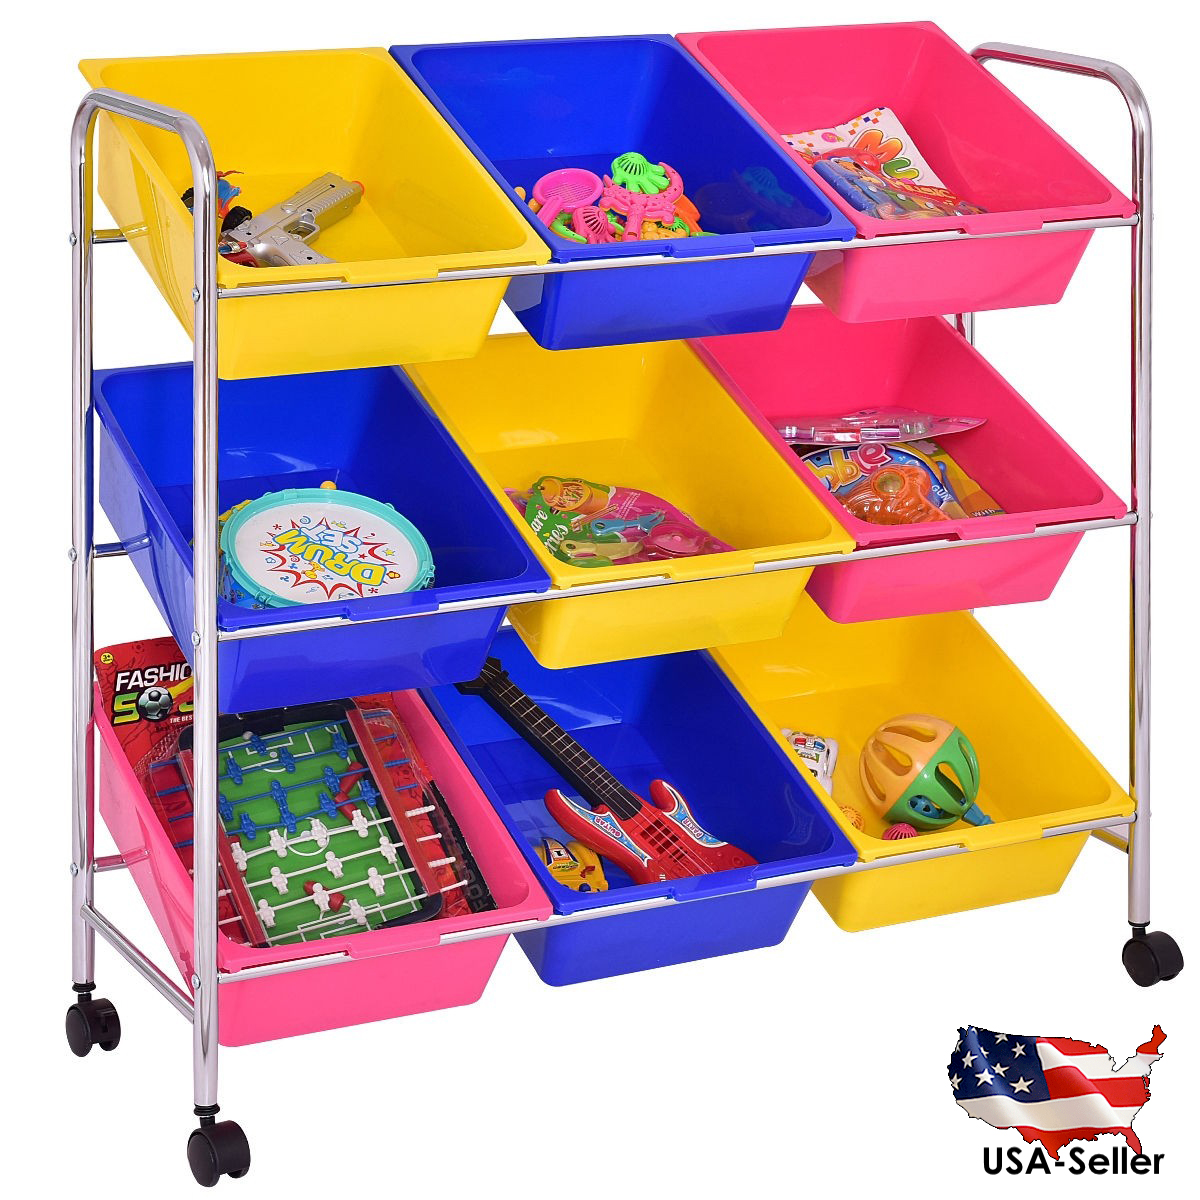 Kids Toys Accessories Bin Cart Rack Organizer Children Book Storage Box Playroom Bedroom Shelf Drawer